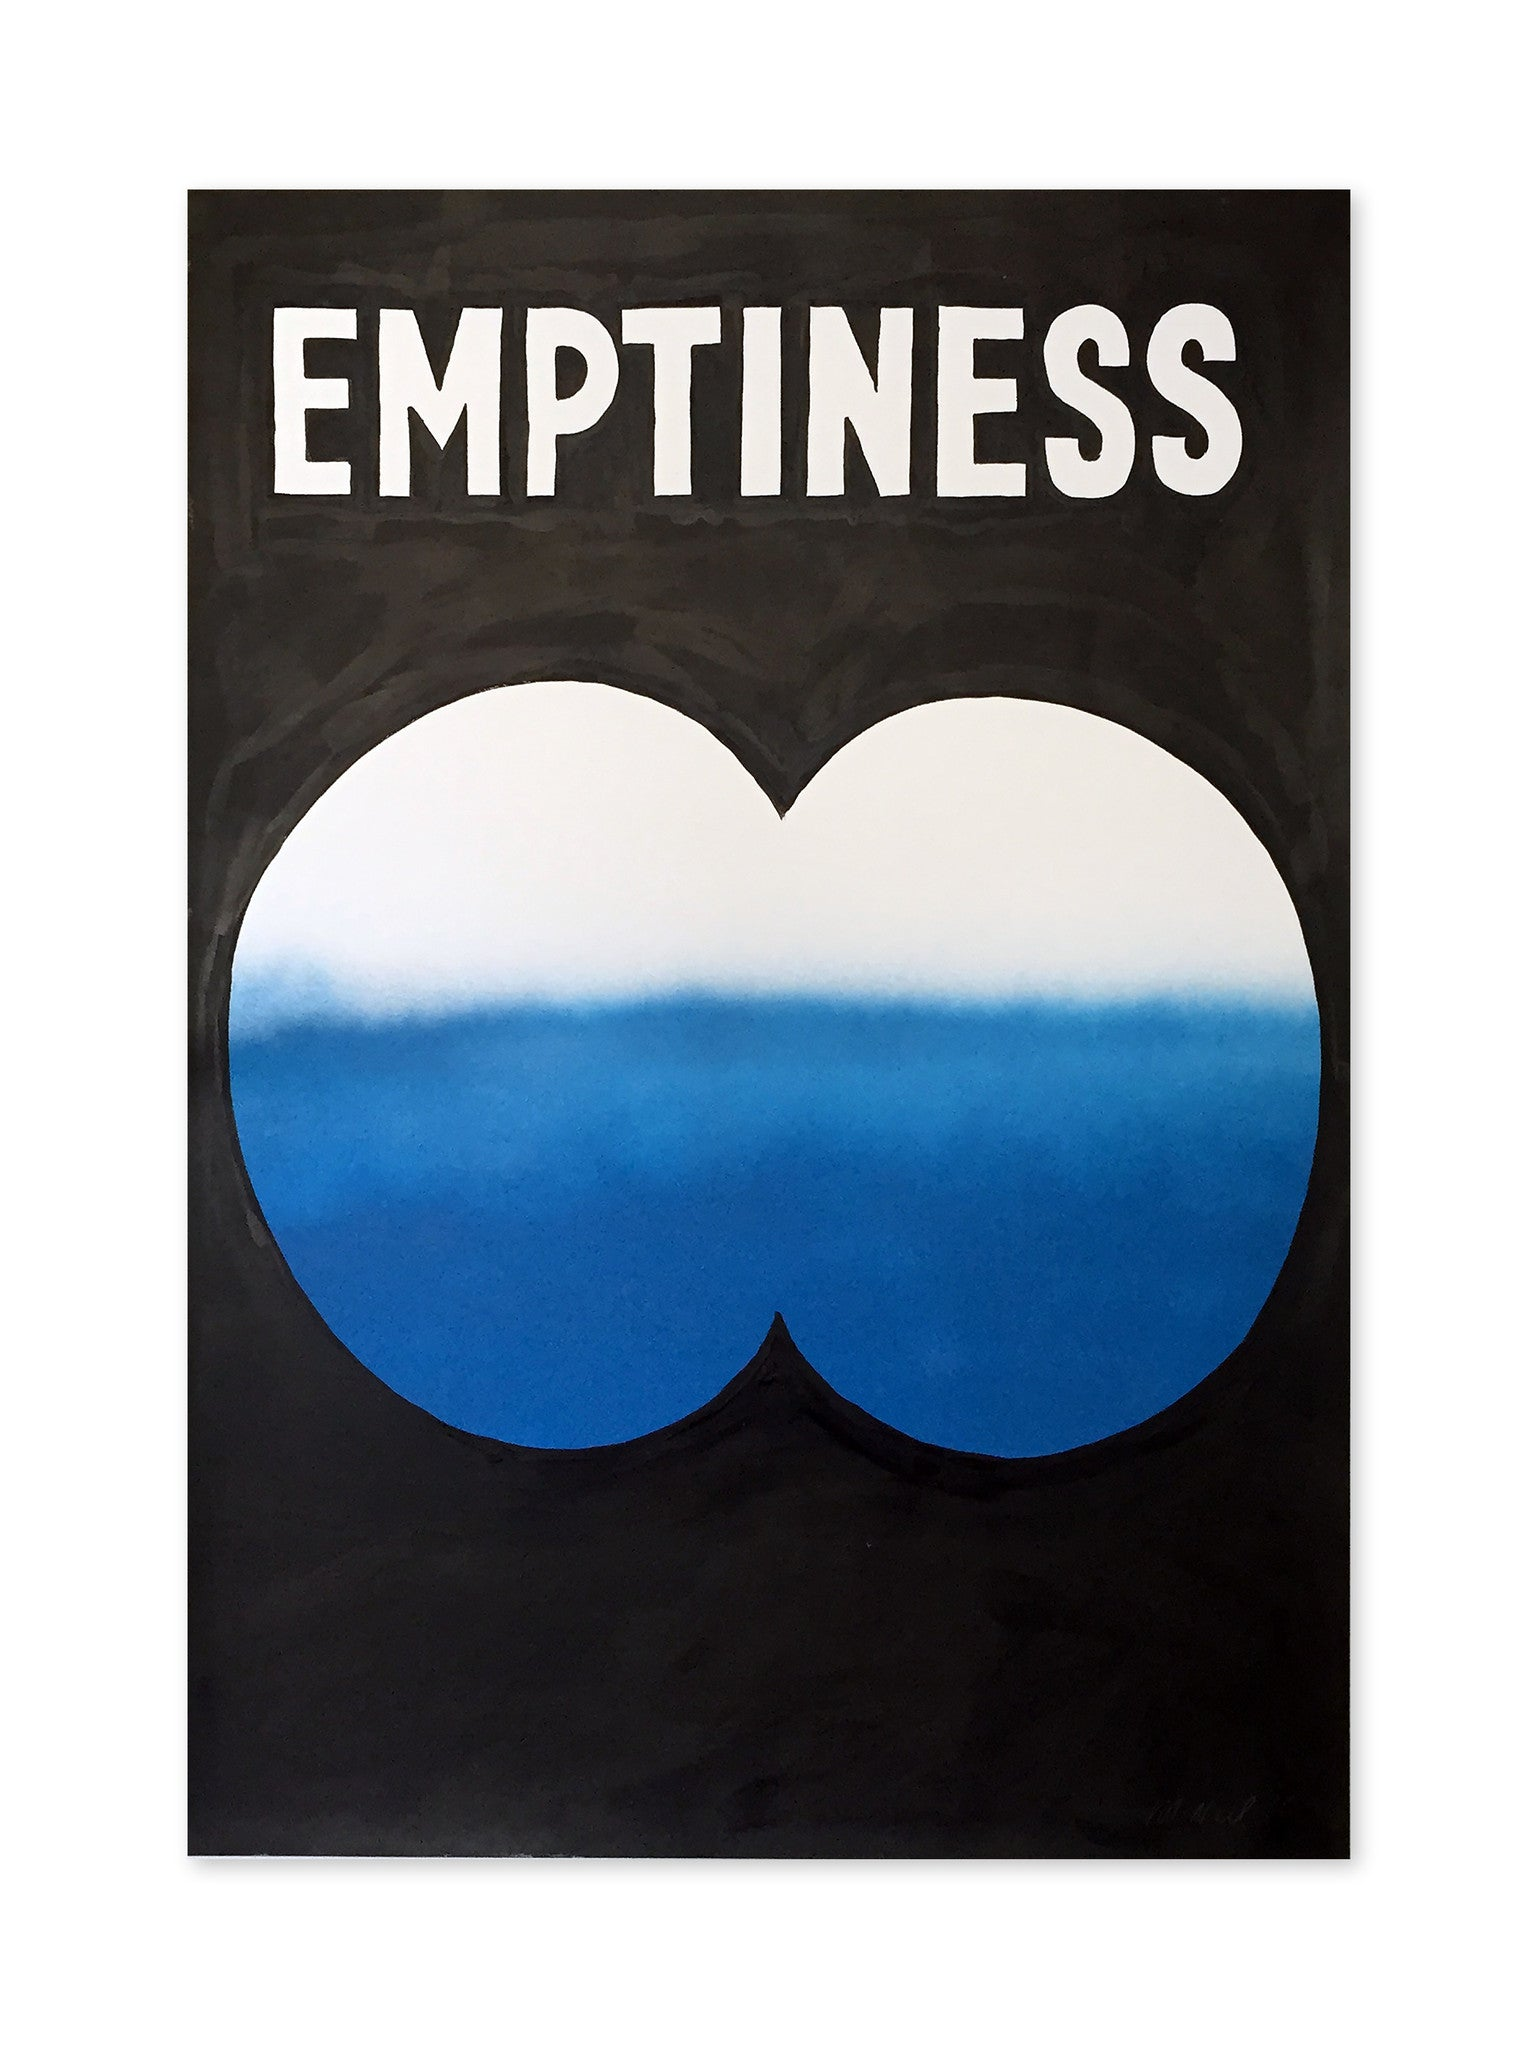 Paul McNeil - Emptiness